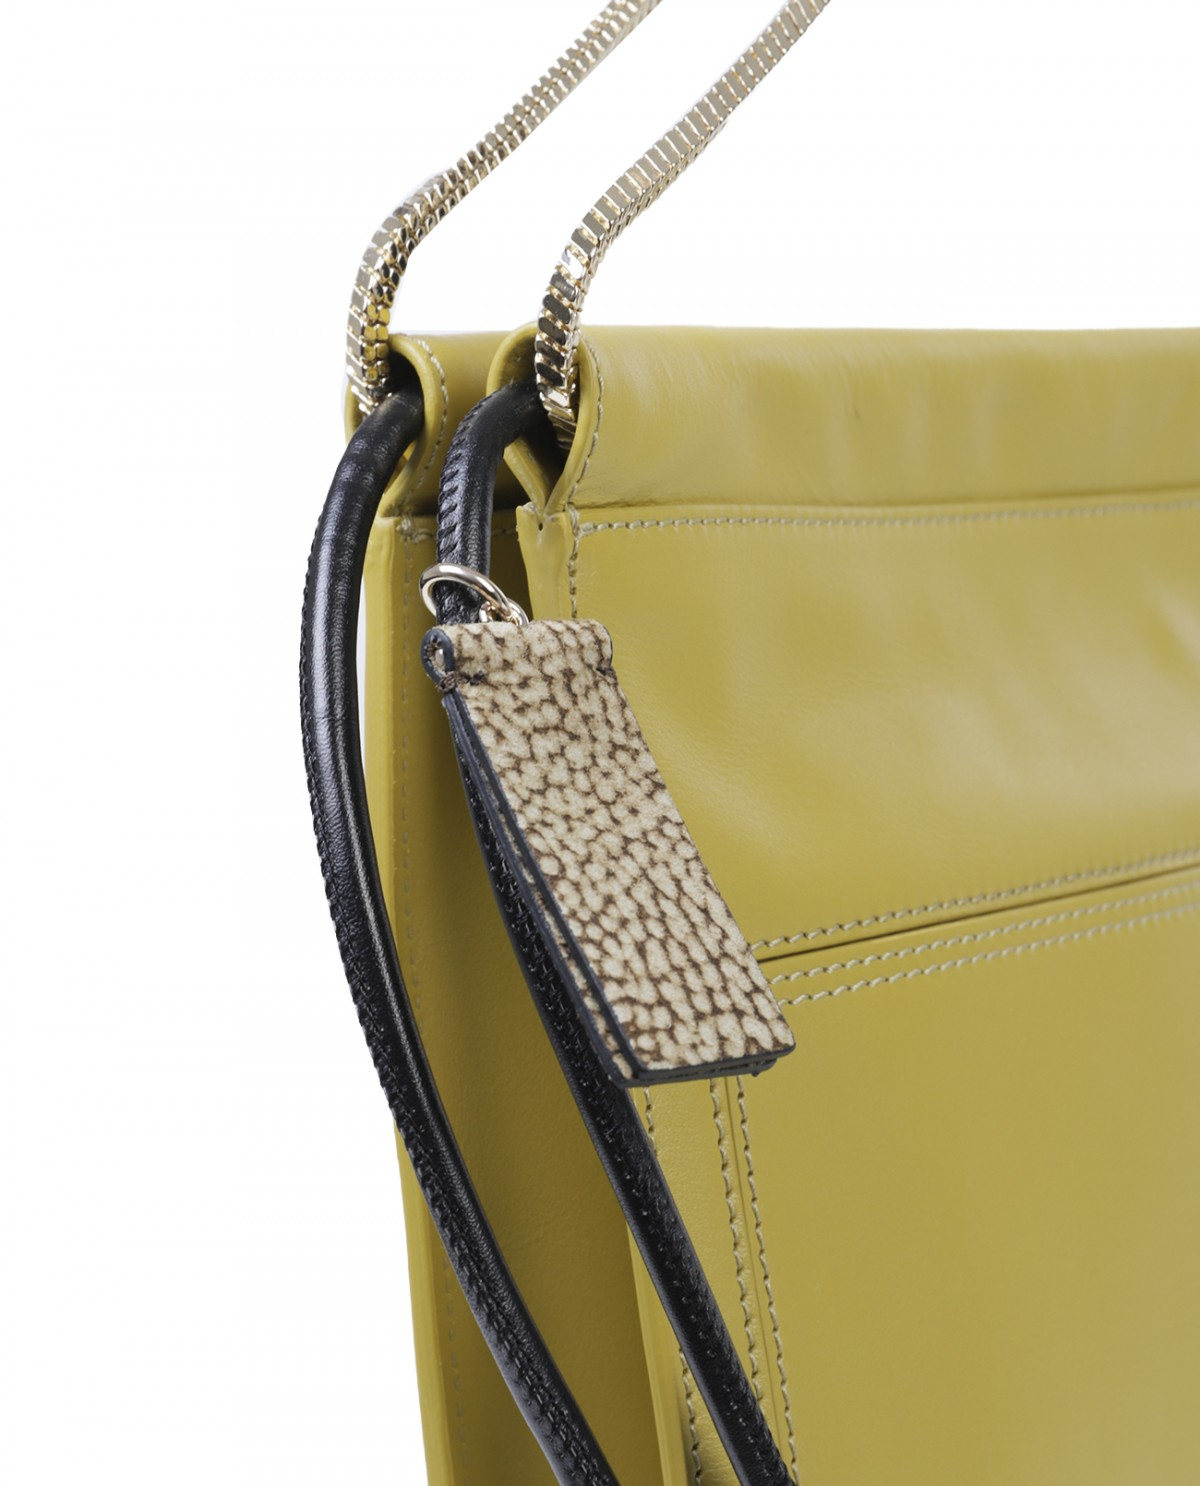 Marc Jacobs - braccialetto con charms